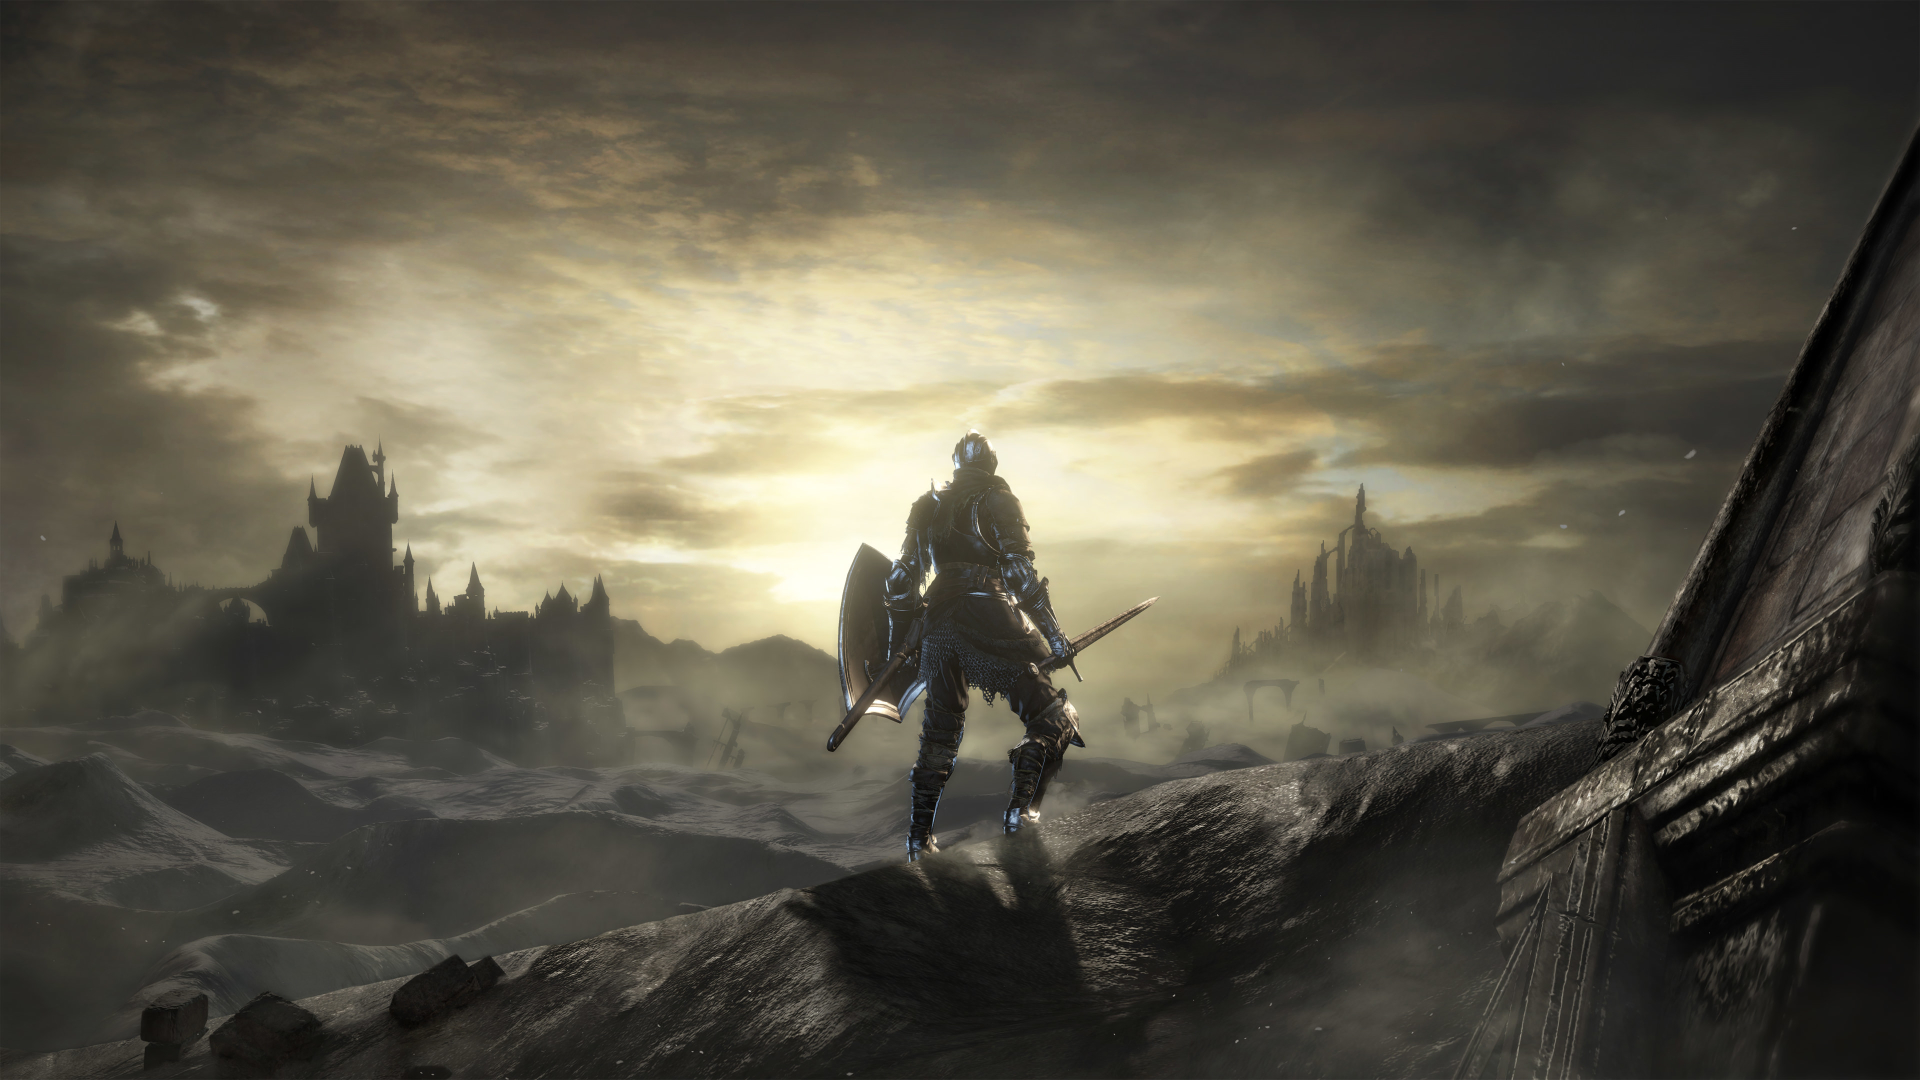 1920x1080 Dark Souls 3 Warrior 1080p Laptop Full Hd Wallpaper Hd